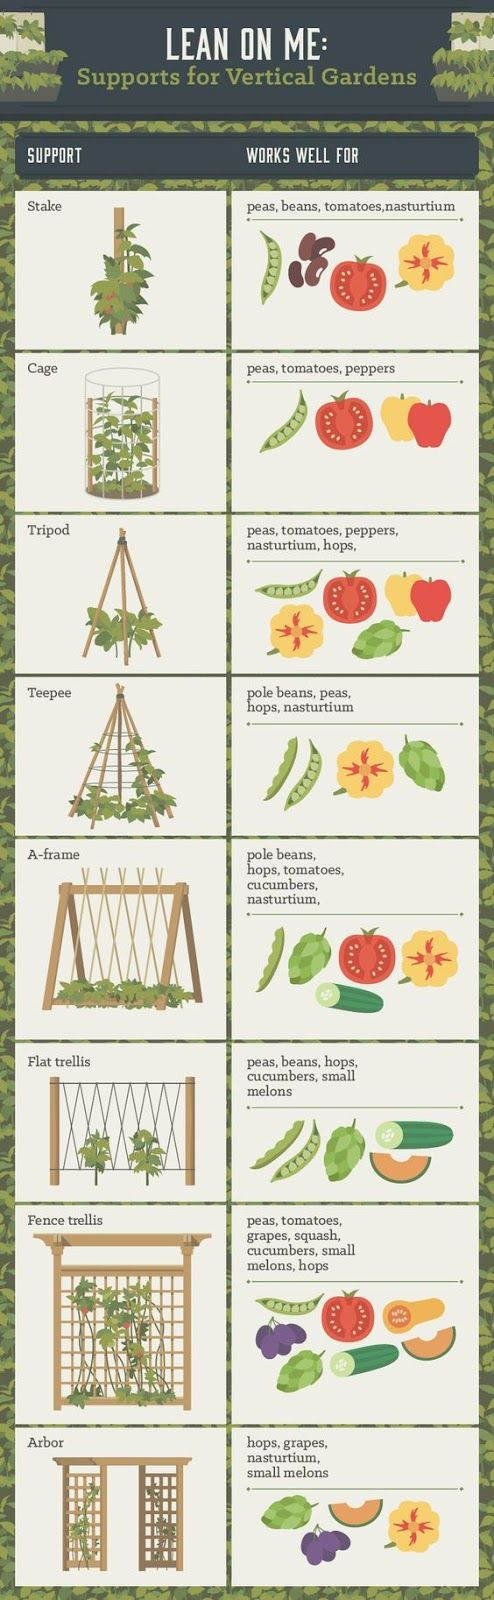 Trellis ideas for vertical gardening . . . .